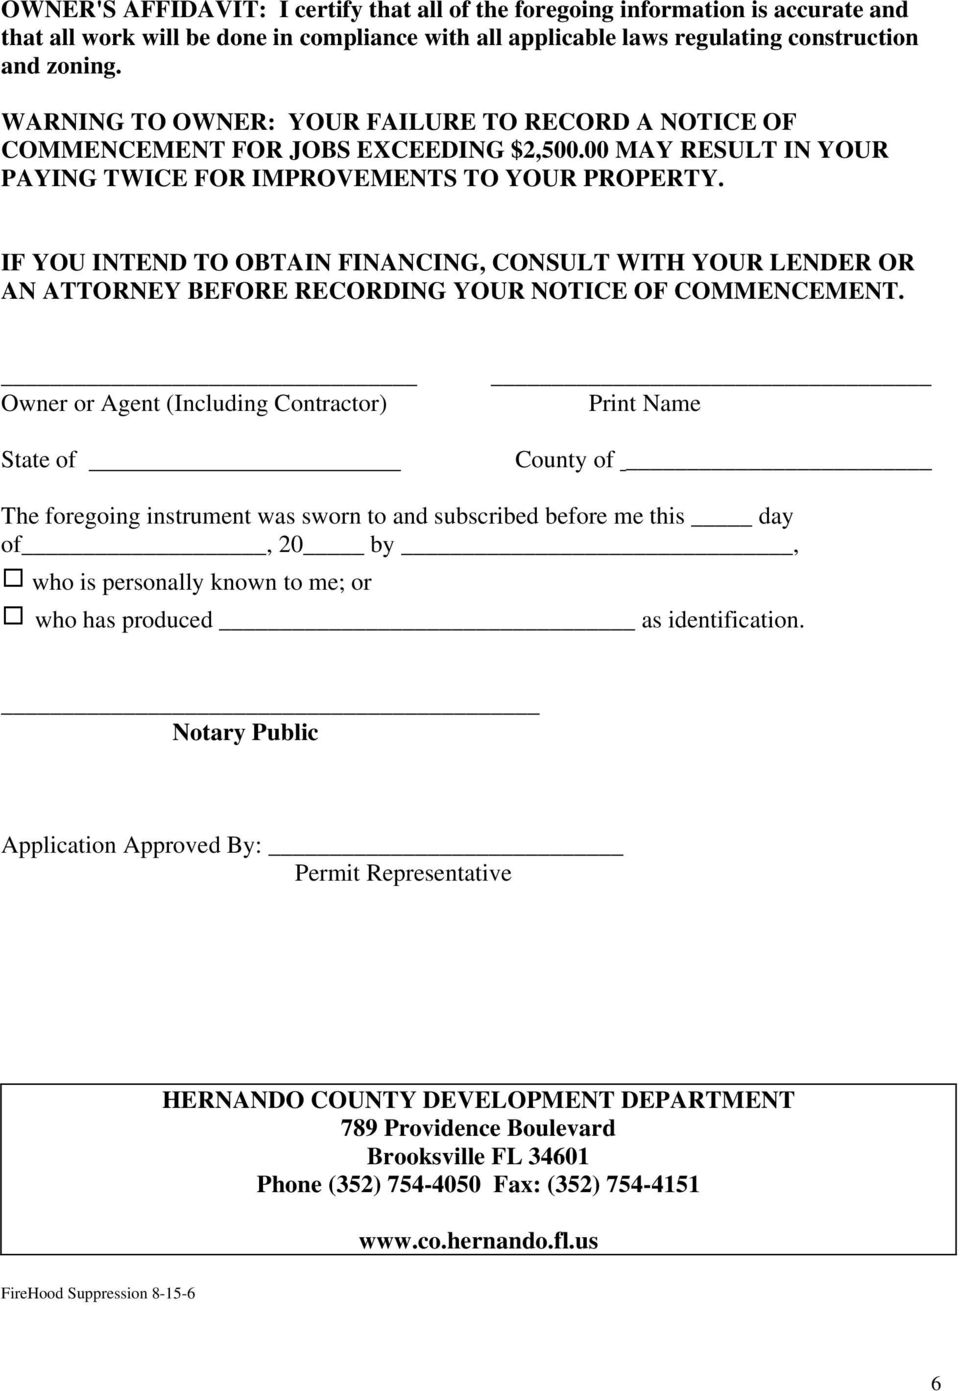 IF YOU INTEND TO OBTAIN FINANCING, CONSULT WITH YOUR LENDER OR AN ATTORNEY BEFORE RECORDING YOUR NOTICE OF COMMENCEMENT.